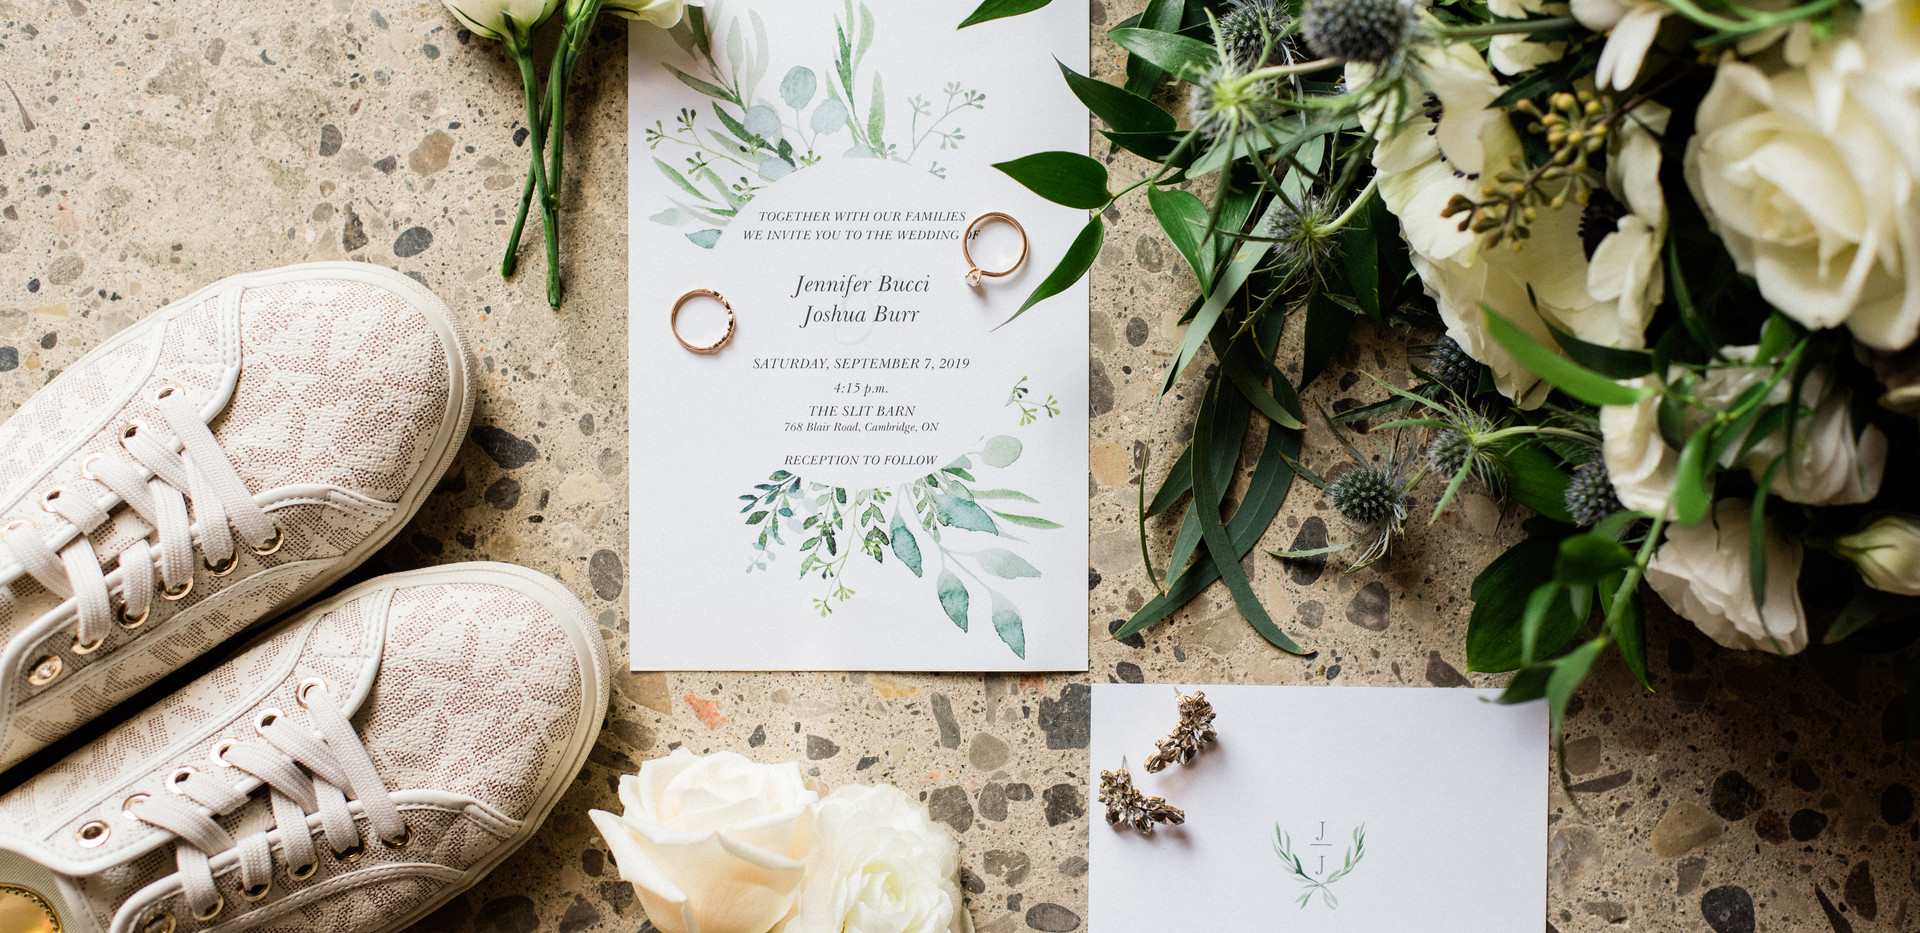 stationery invitation flat lay with bouquet, brand name sneakers, and rings